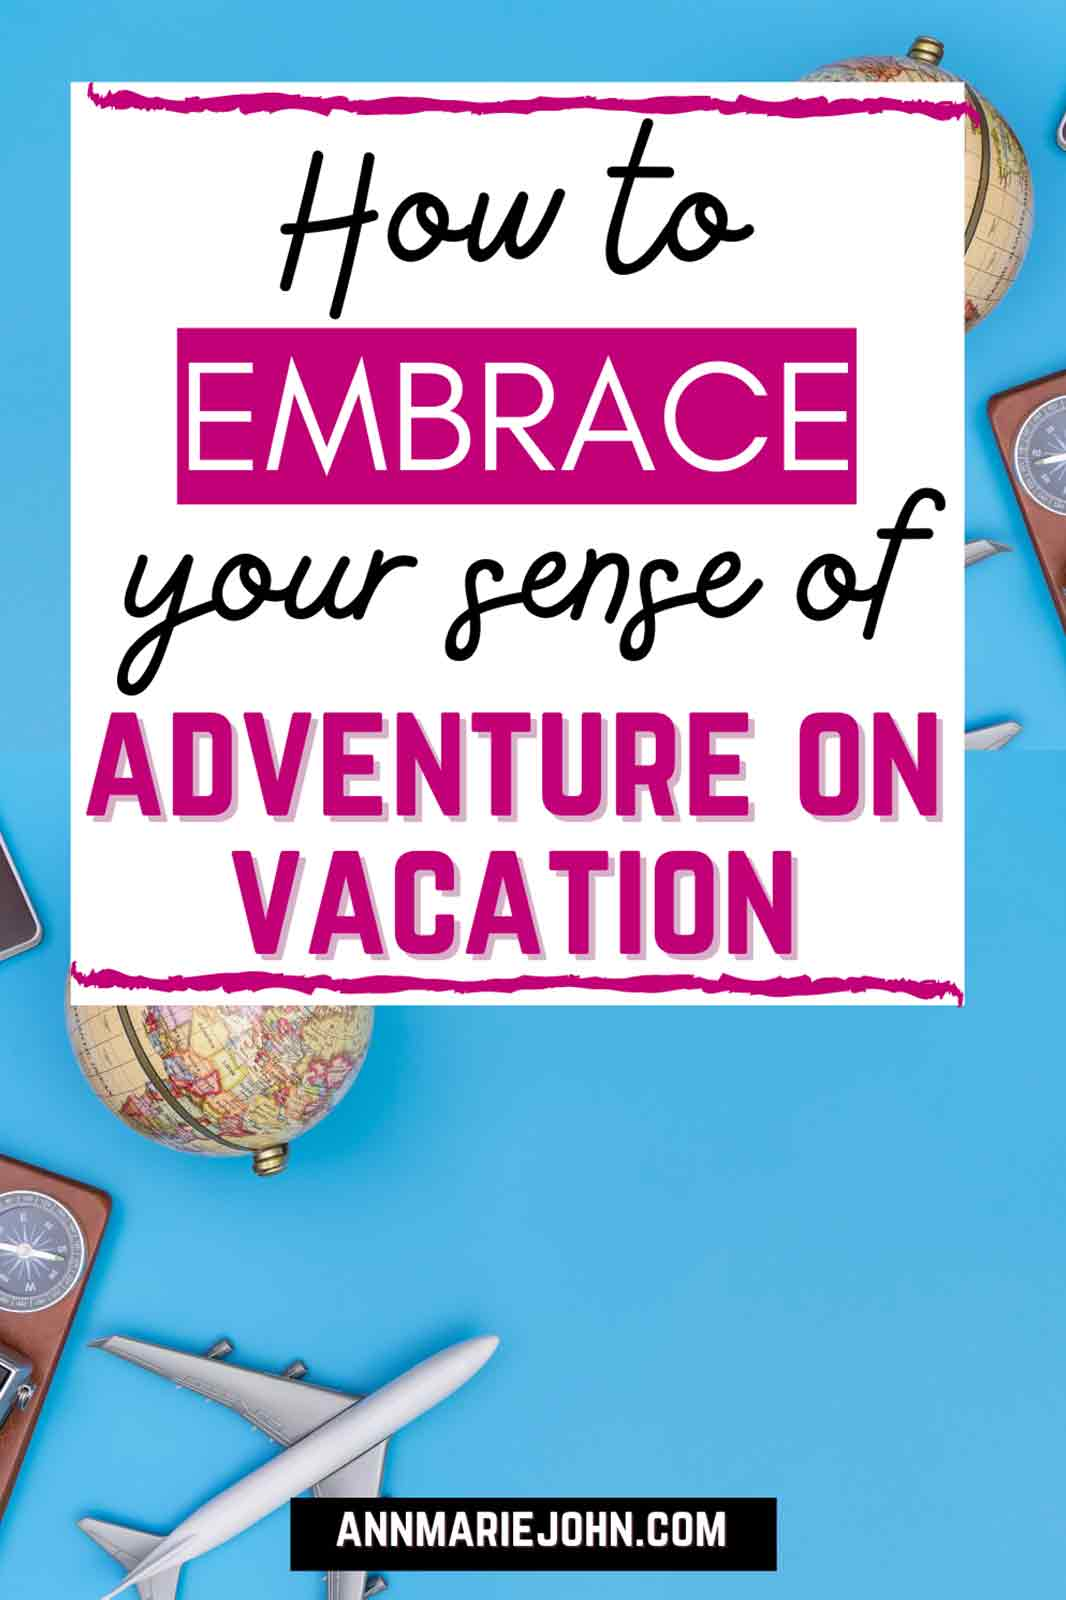 How To Embrace Your Sense Of Adventure